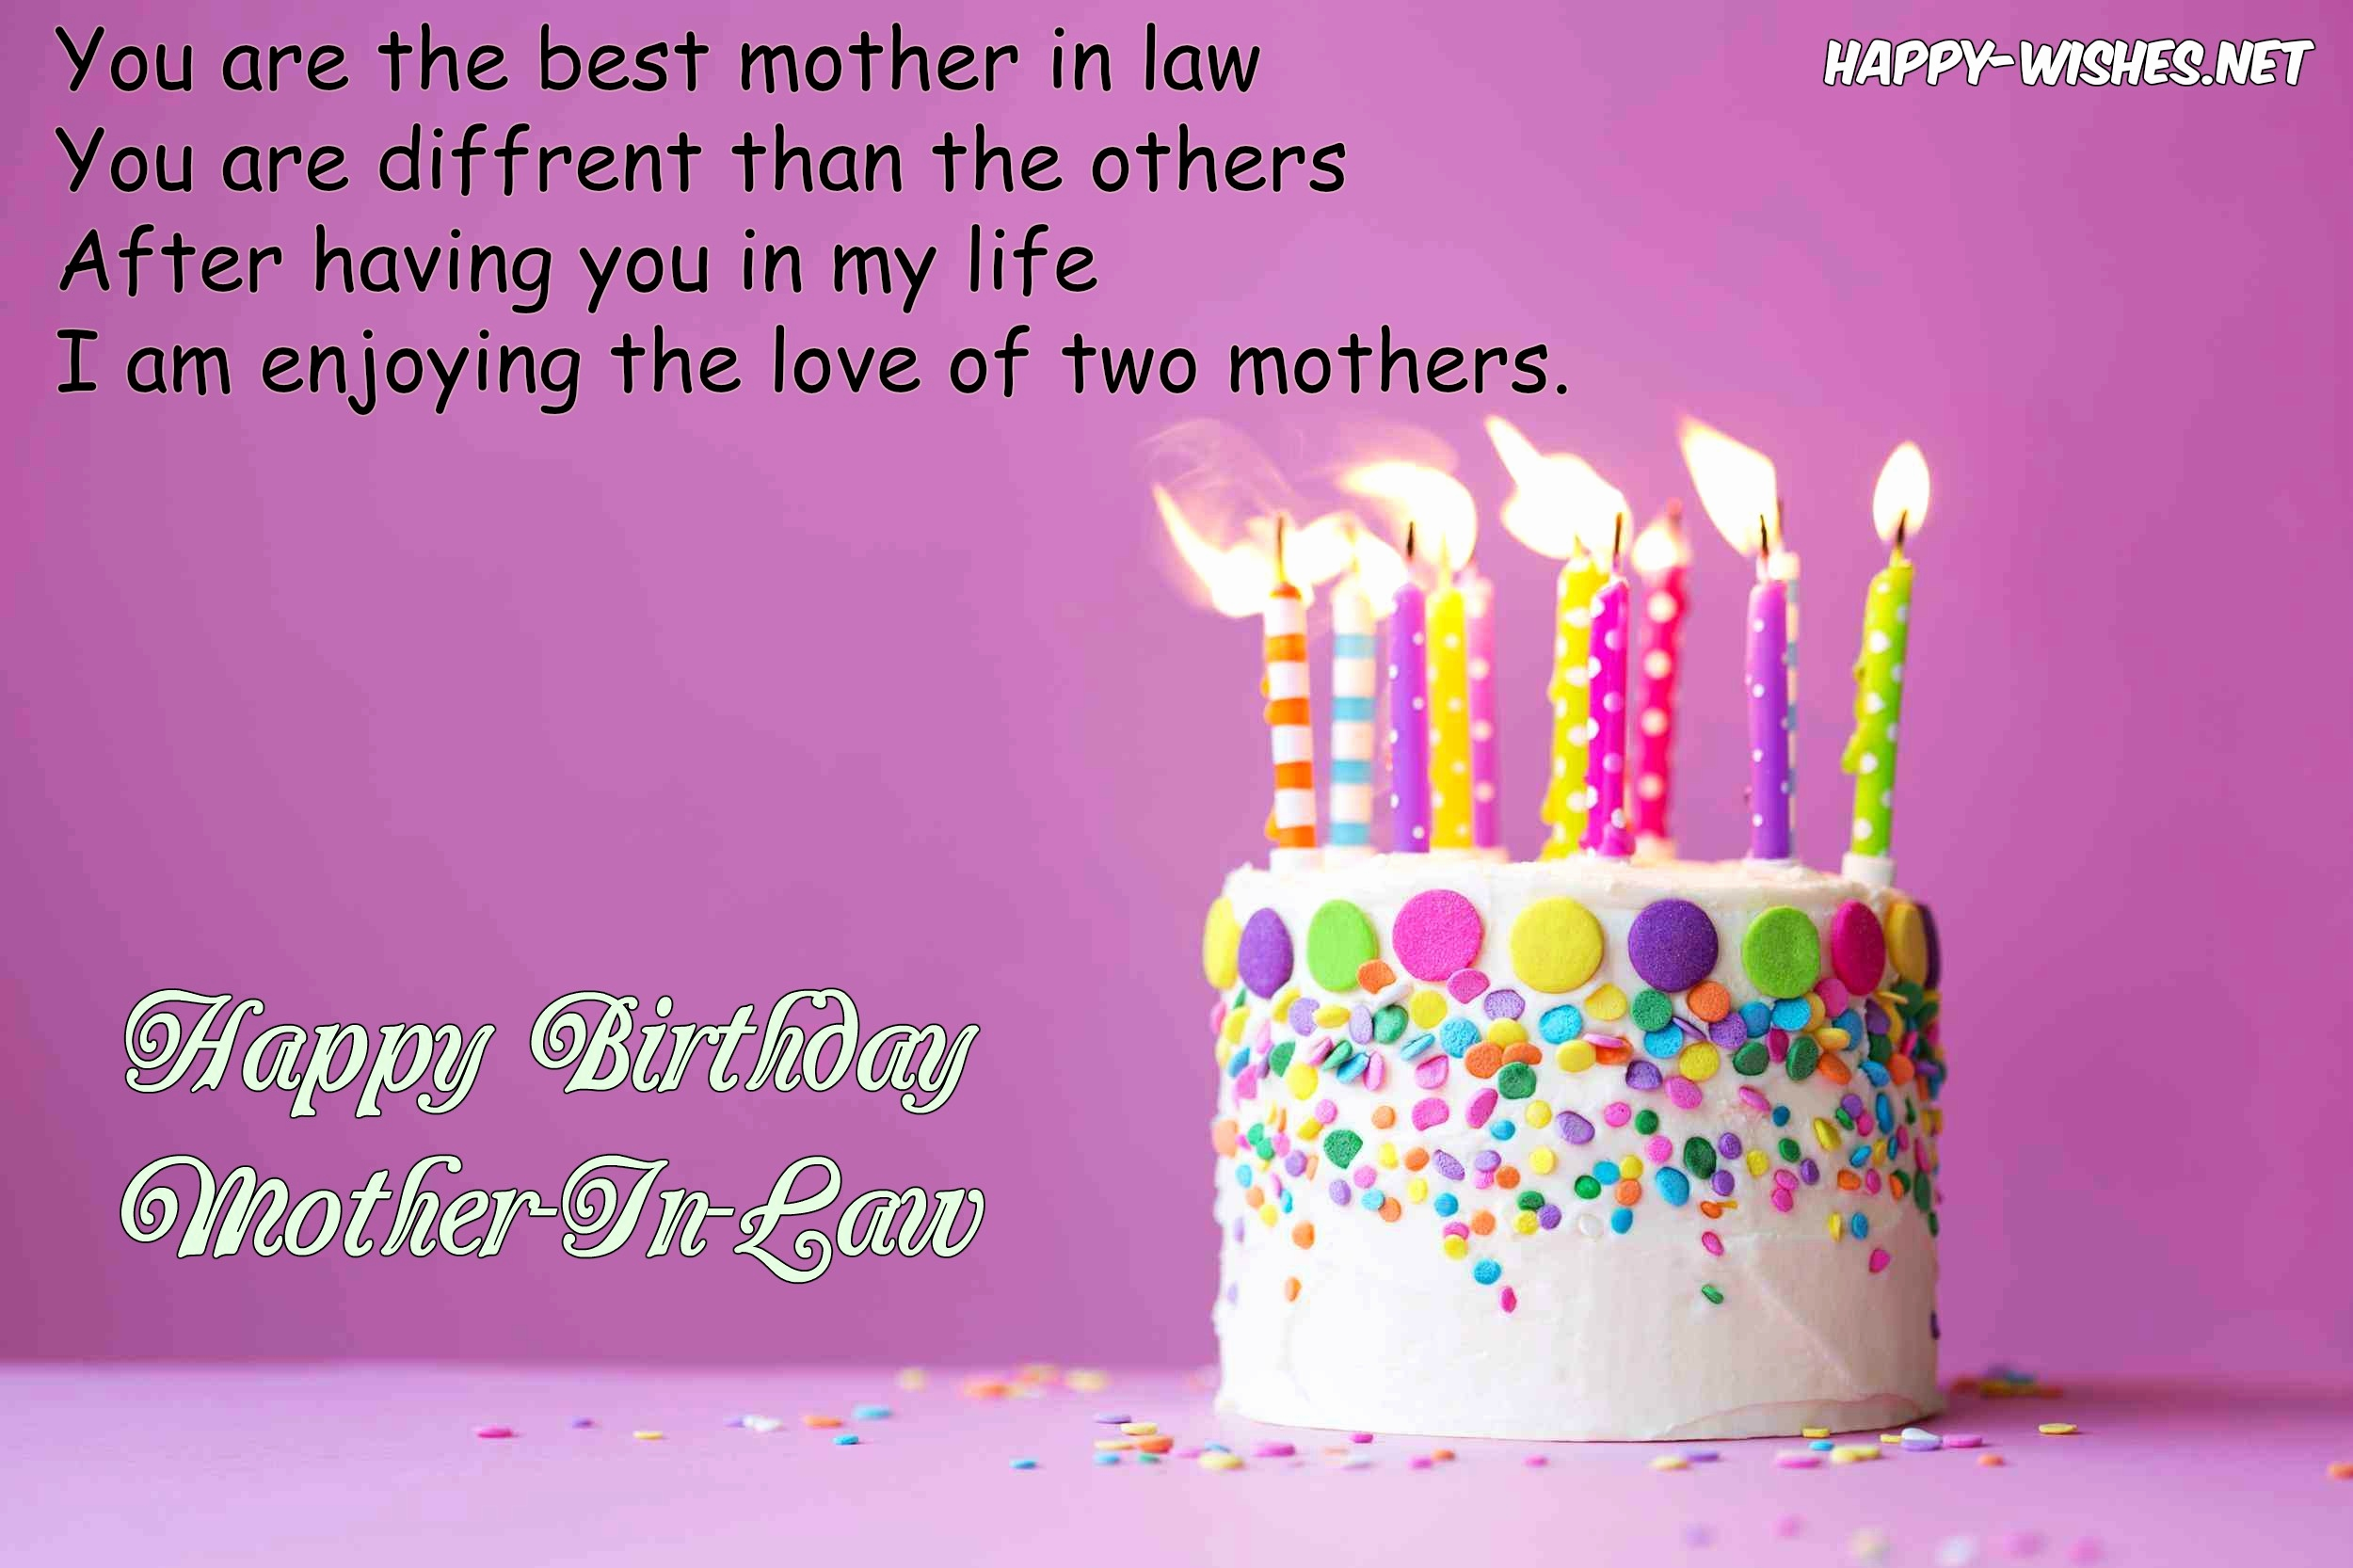 birthday message for mother in law tagalog ; birthday-quotes-for-mother-in-law-beautiful-happy-birthday-wishes-for-mother-in-law-quotes-and-of-birthday-quotes-for-mother-in-law